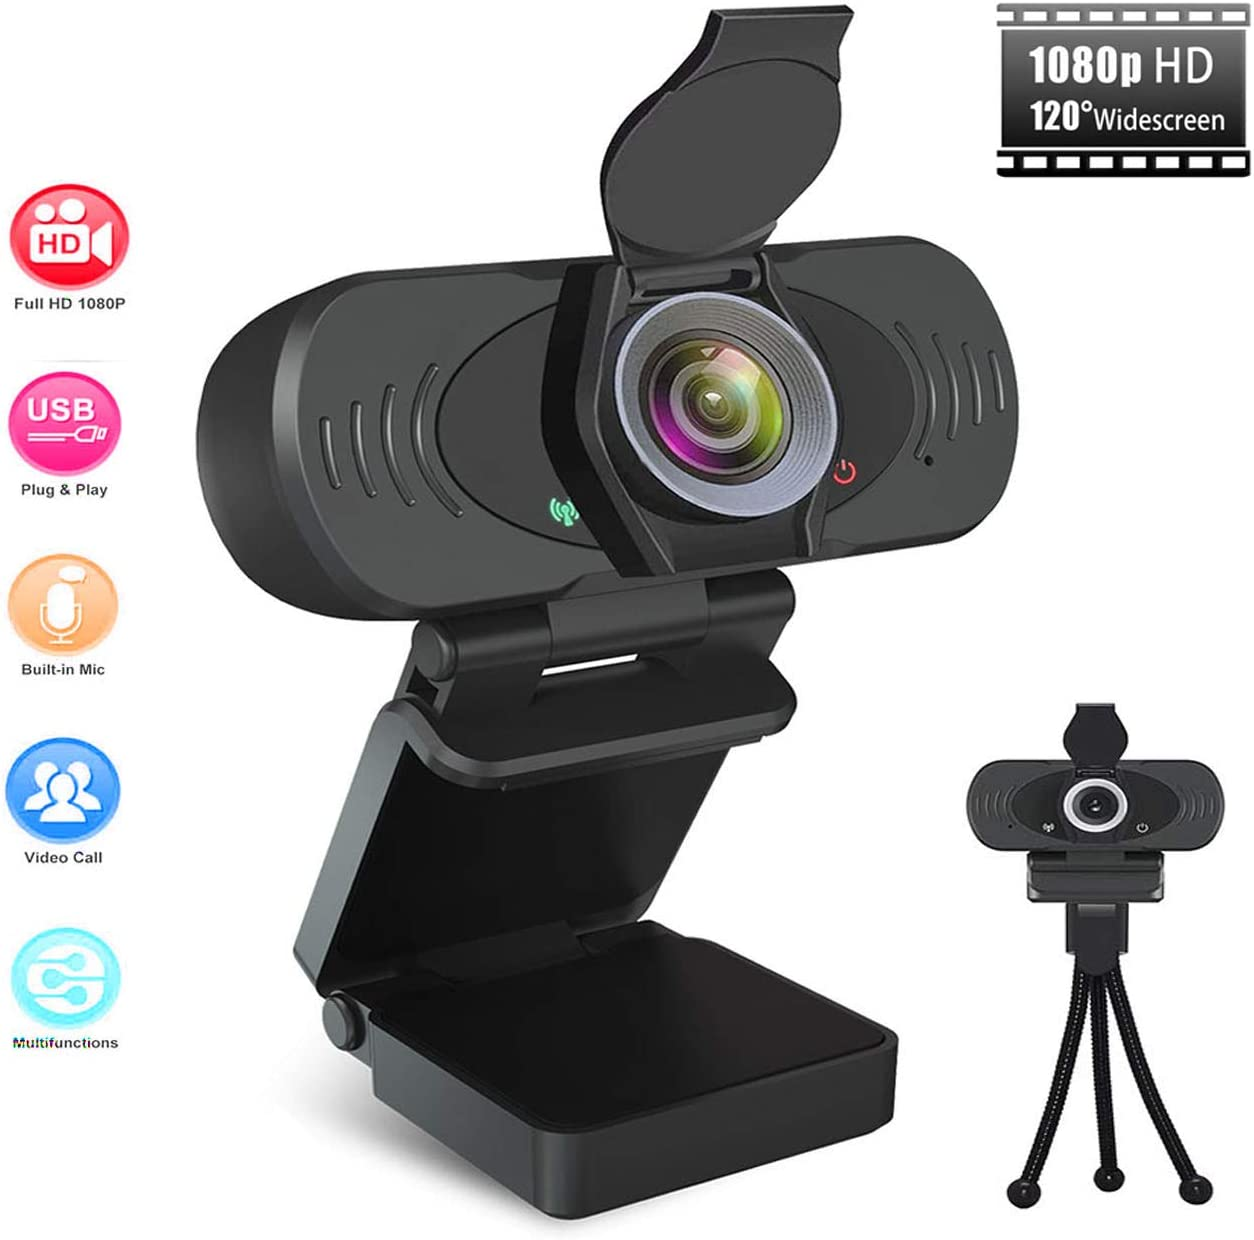 1080P Webcam with Microphone, Plug and Play HD Web Camera for Computer with 120-Degree Wide Angle, Multi-Compatible USB Webcam for PC Laptop Video Calling, Recording, Gaming, Conferencing